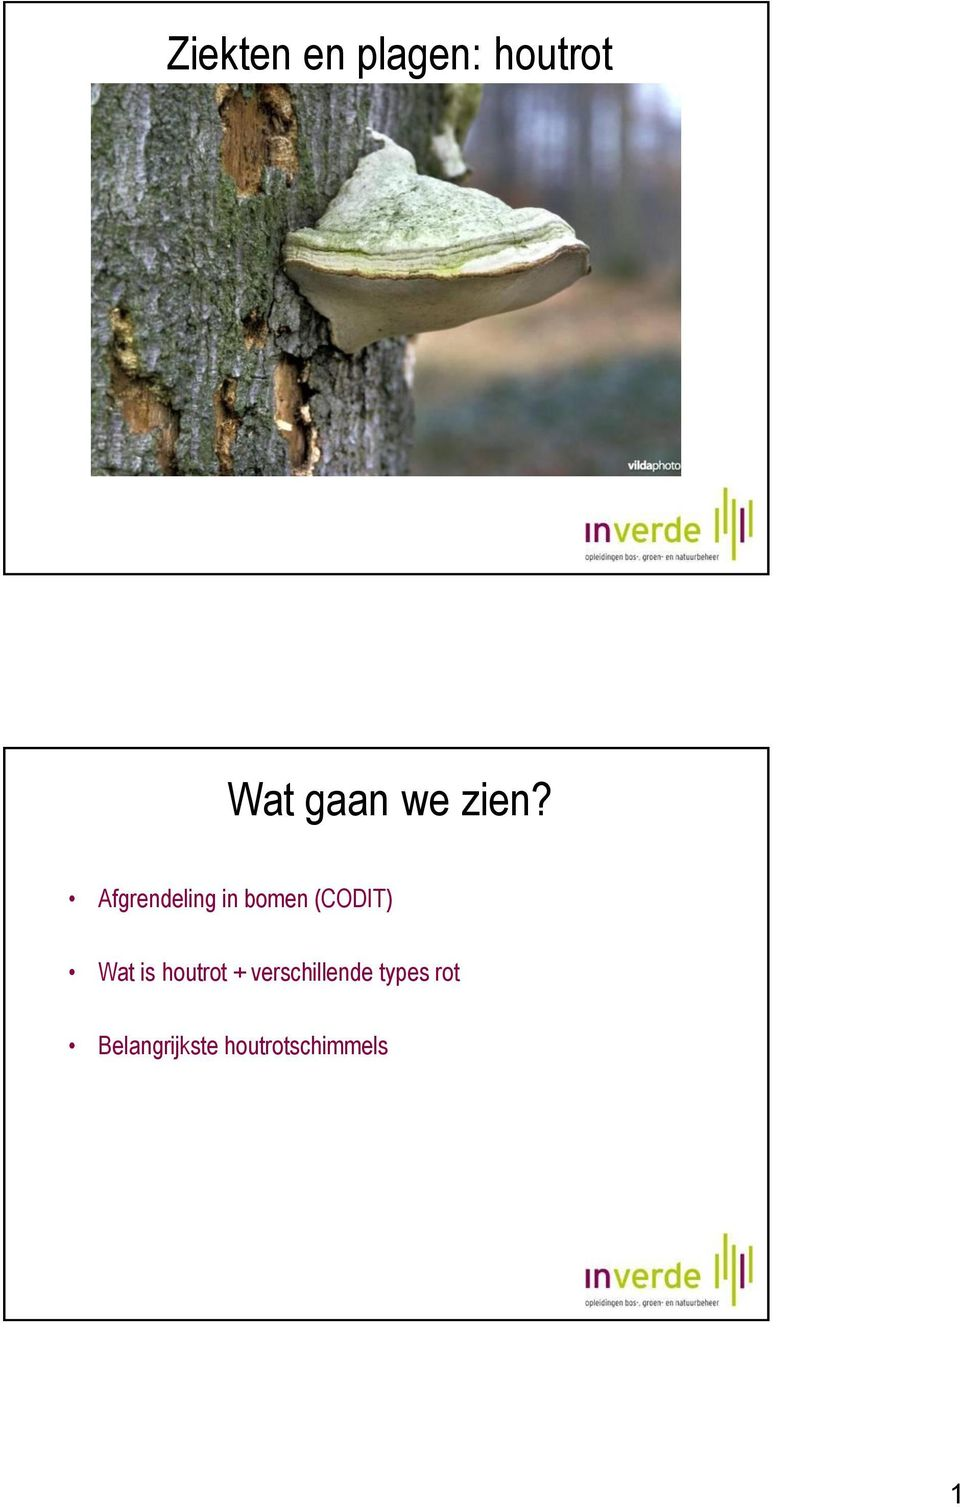 Afgrendeling in bomen (CODIT) Wat is